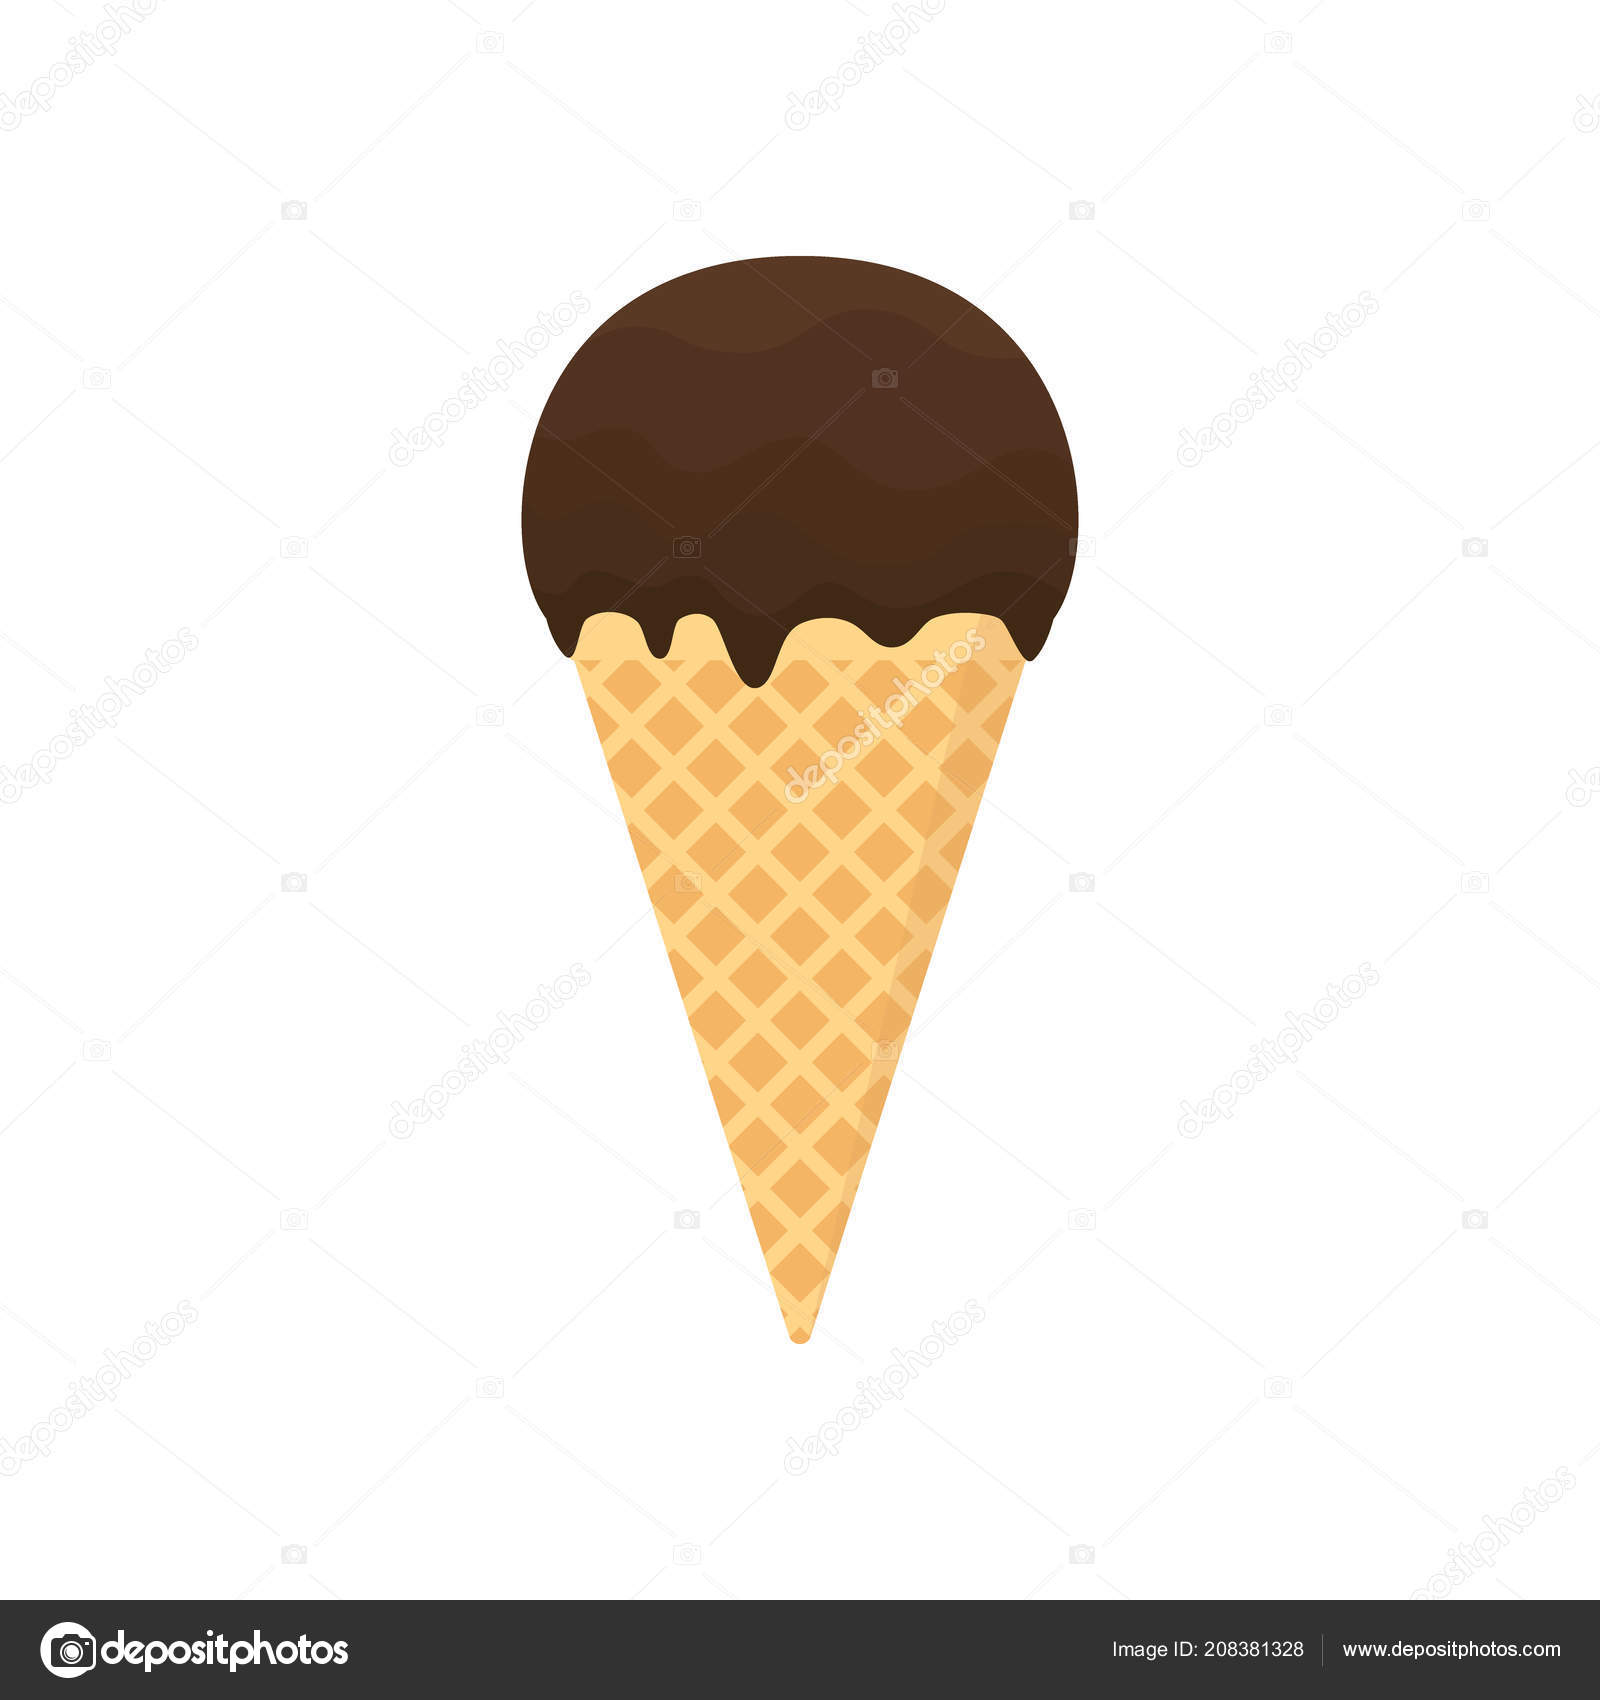 Clipart Chocolate Ice Cream Chocolate Ice Cream Glazed Cartoon Ice Cream Chocolate Topping Clipart Stock Vector C Tsvetinaiv 208381328